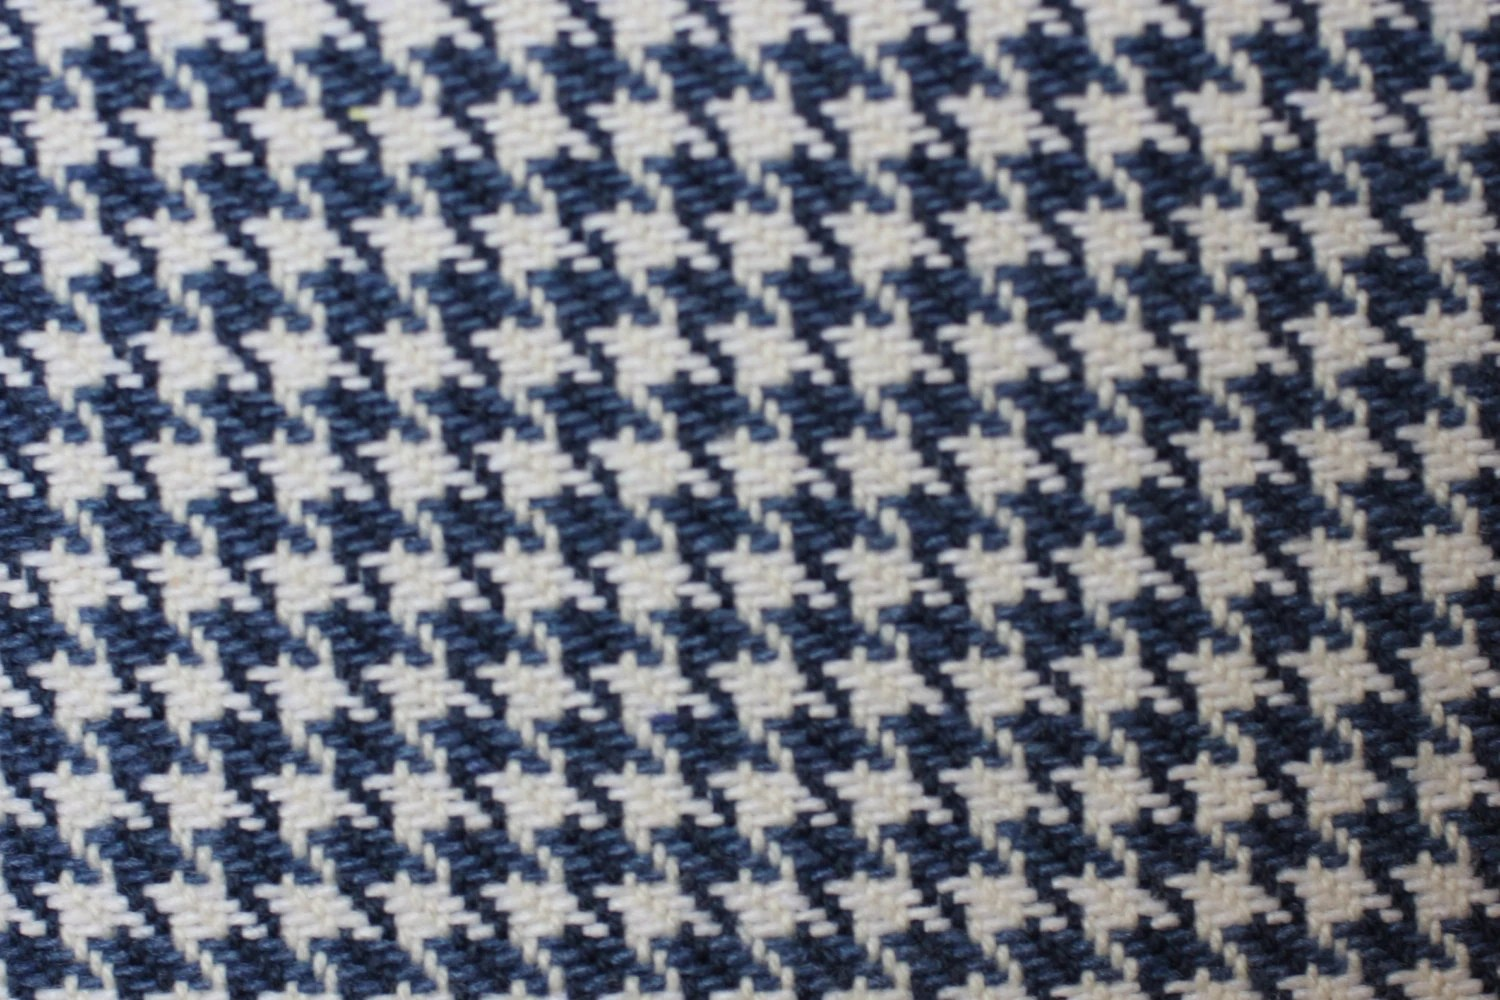 houndstooth sofa fabric futon bed covers 3 4 yd pc blue and white woven for